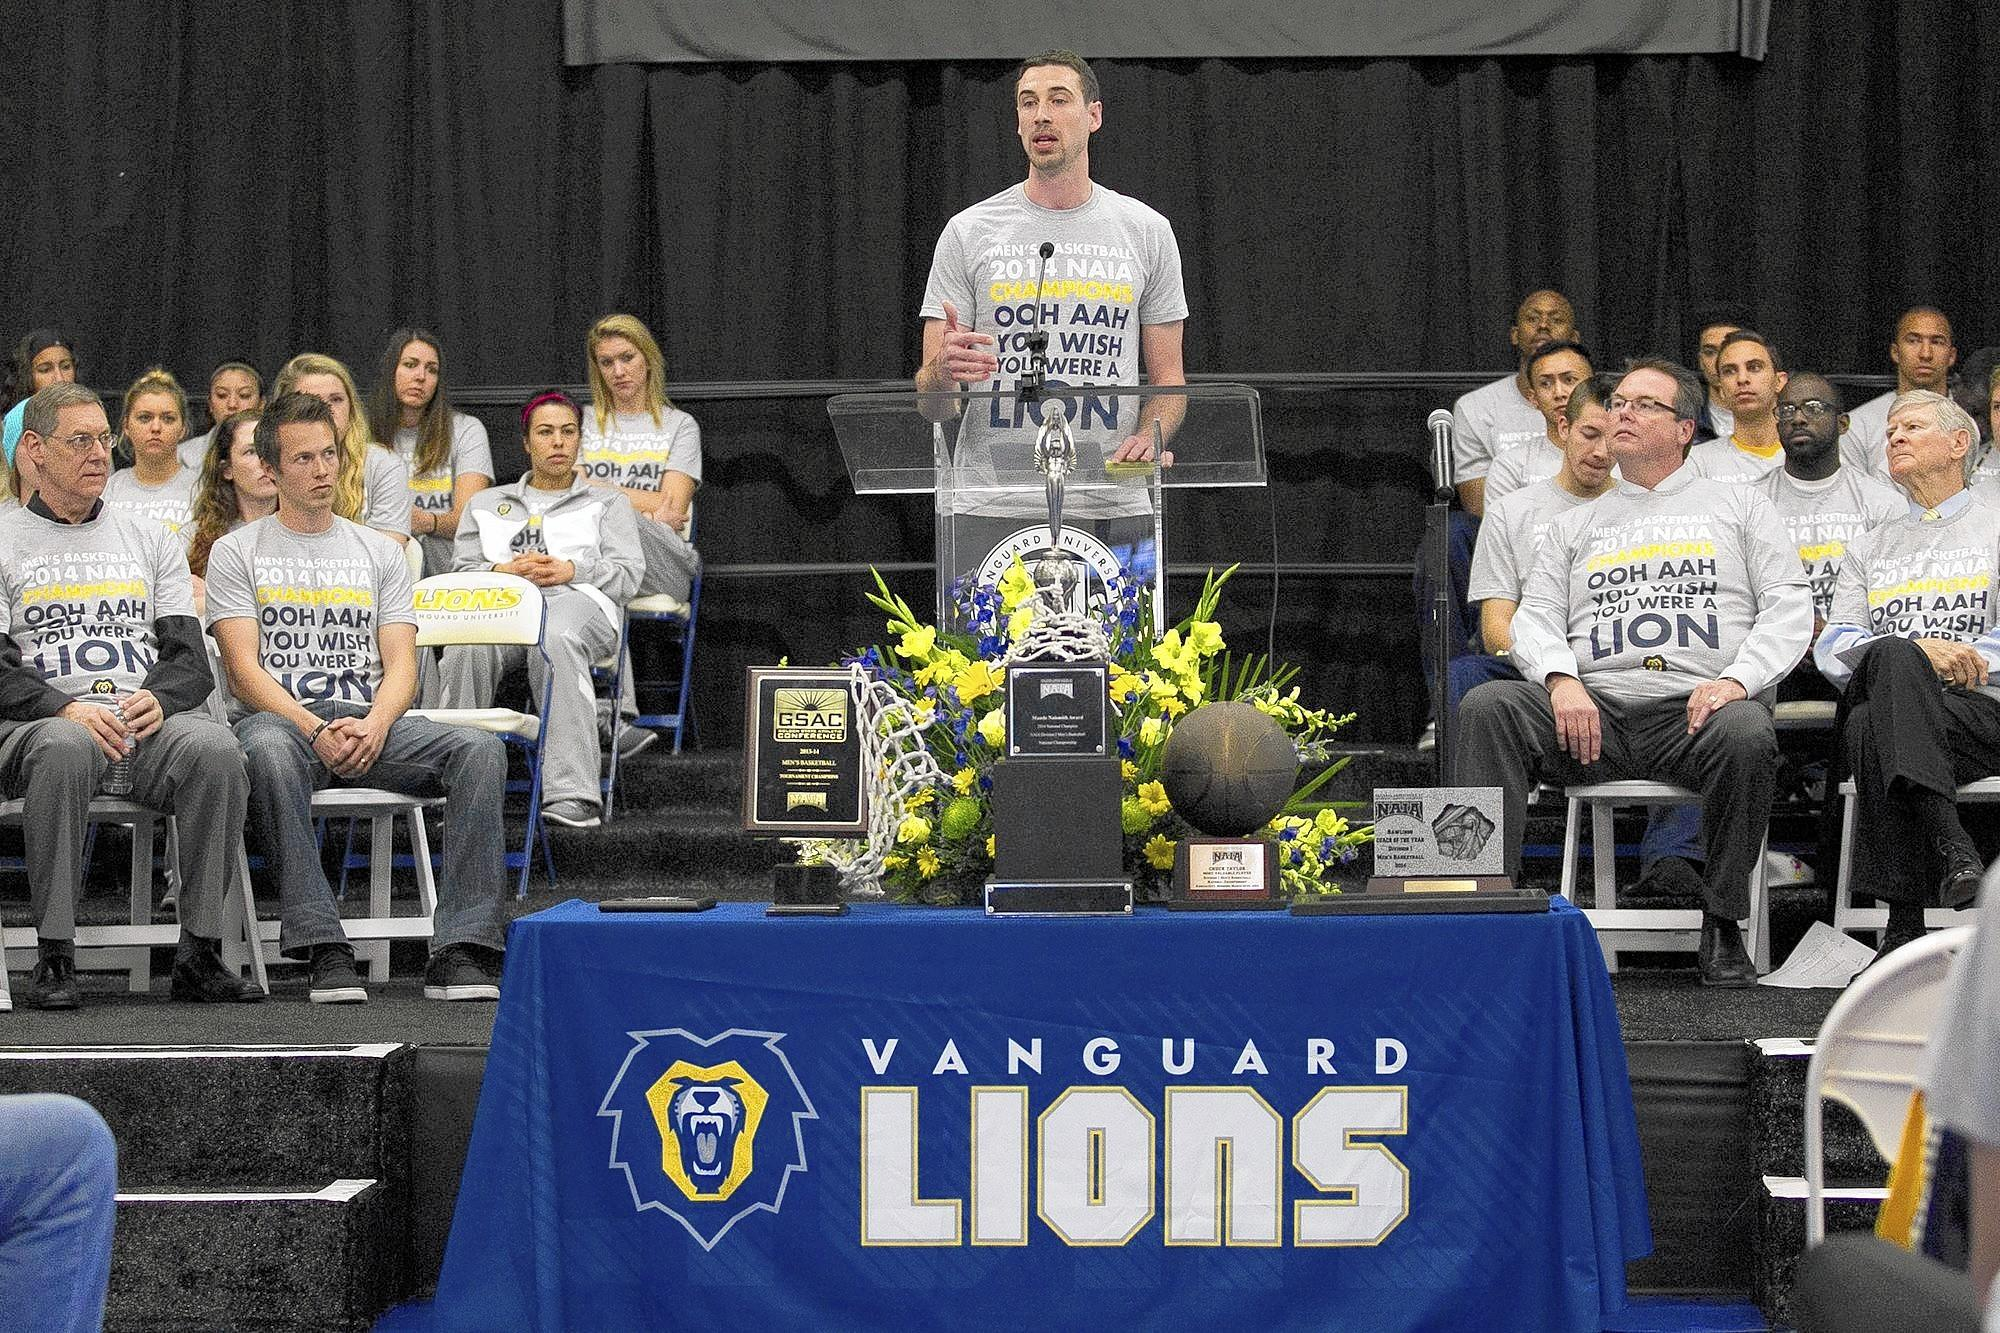 Rhett Soliday, the head coach for the Lions mens' basketball team, speaks to the crowd during a 2014 NAIA Basketball National Championship rally at Vanguard University on Wednesday.